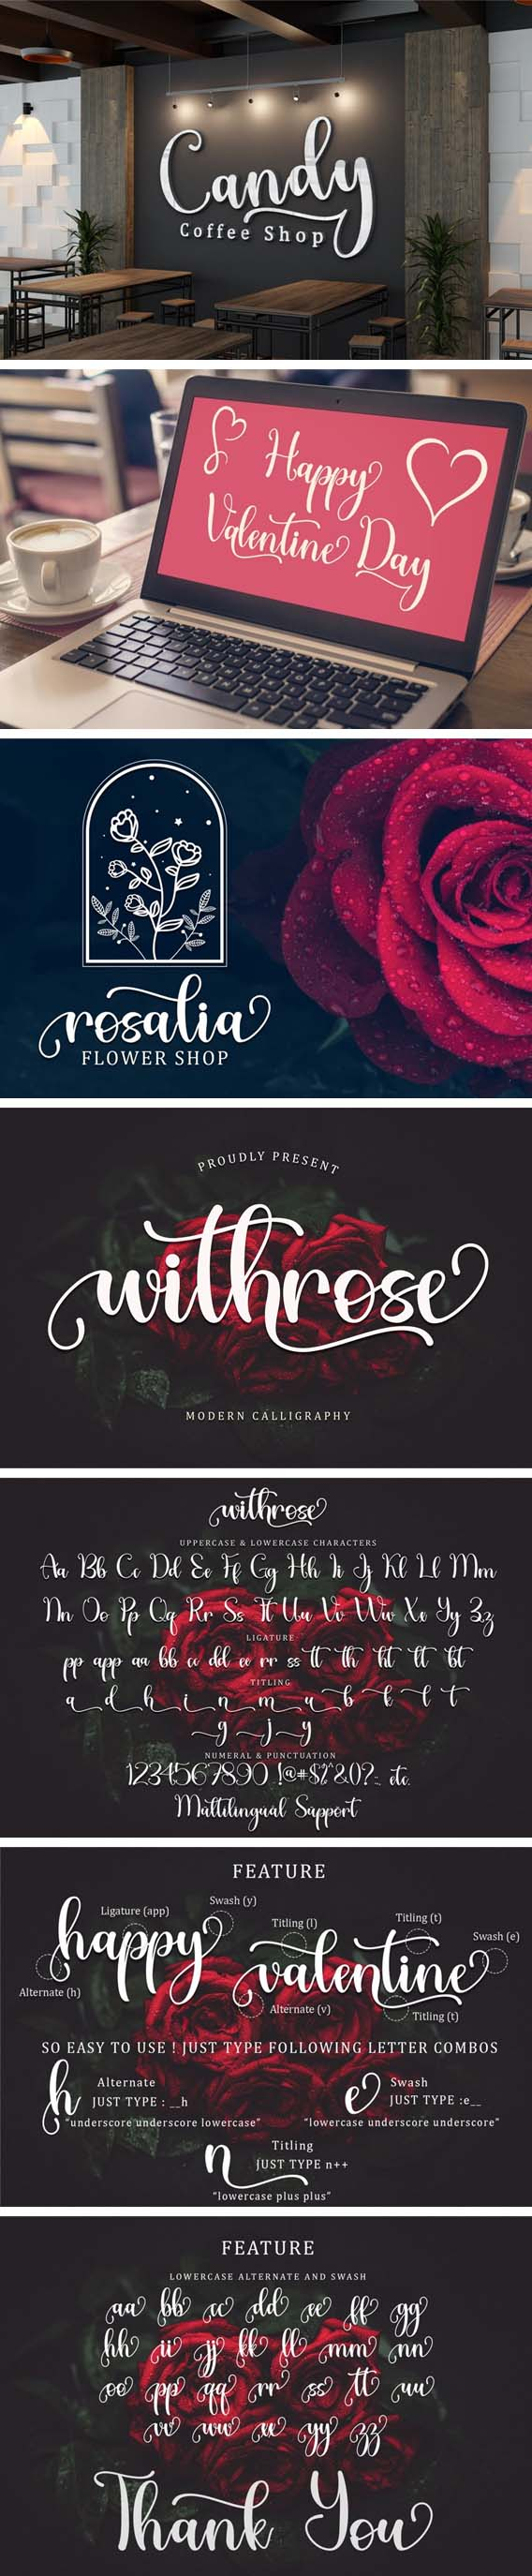 147 Fonts - All Collections - Limited Editions